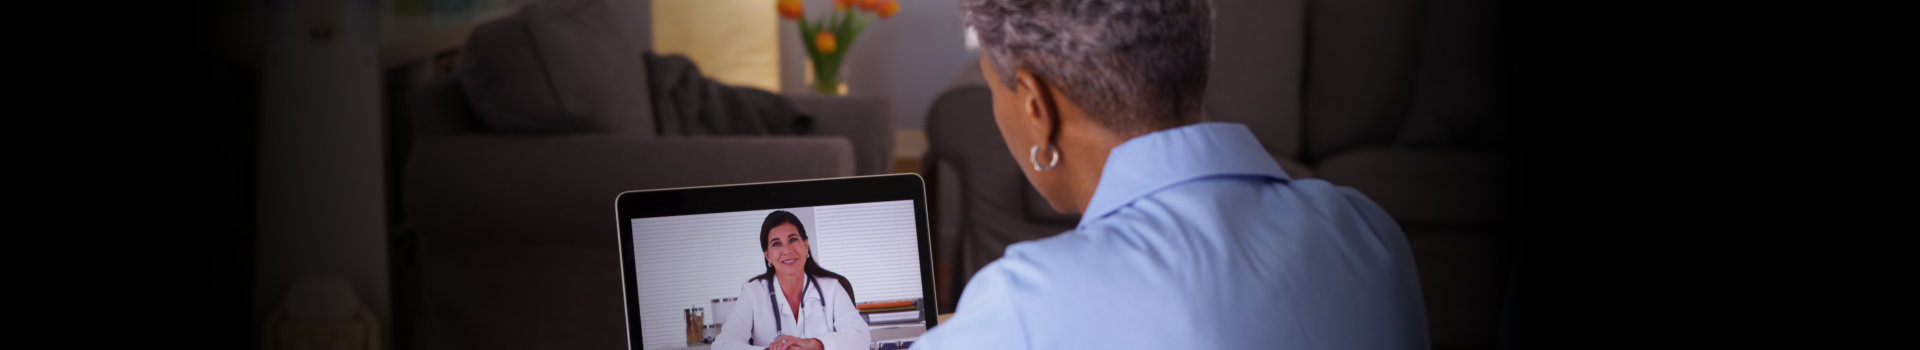 woman talking to a health professional using laptop